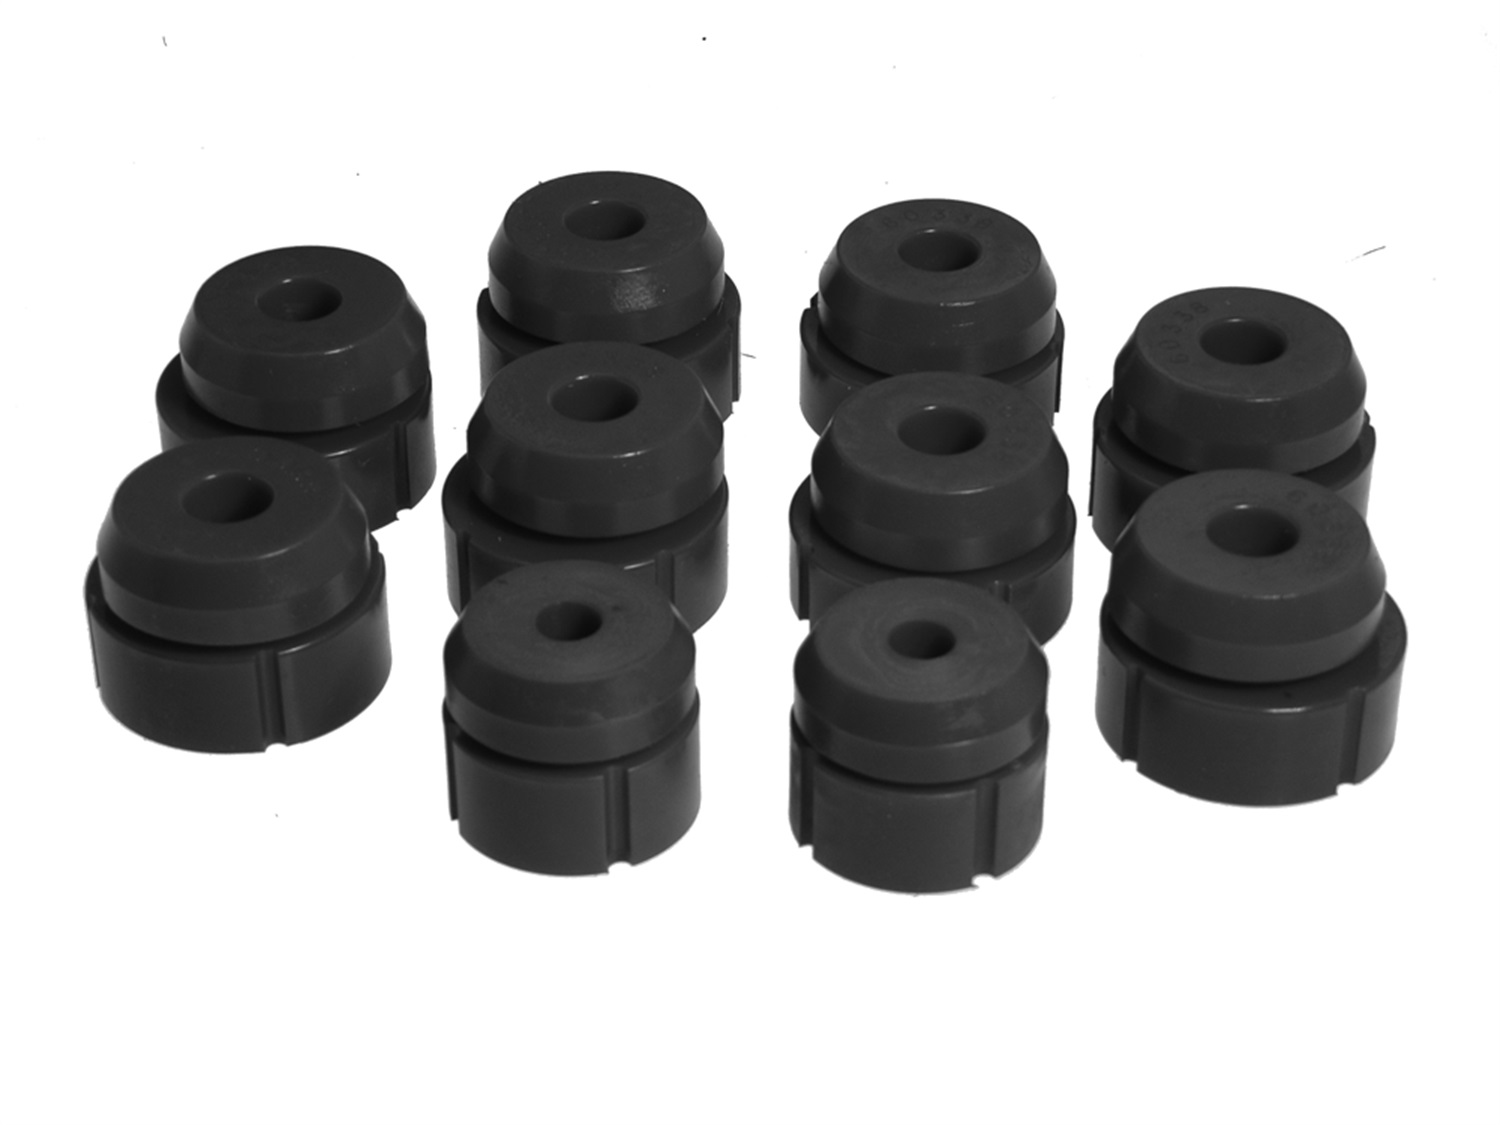 Prothane 6-107-BL Body And Cab Mount Bushing Kit Fits 80-96 Bronco